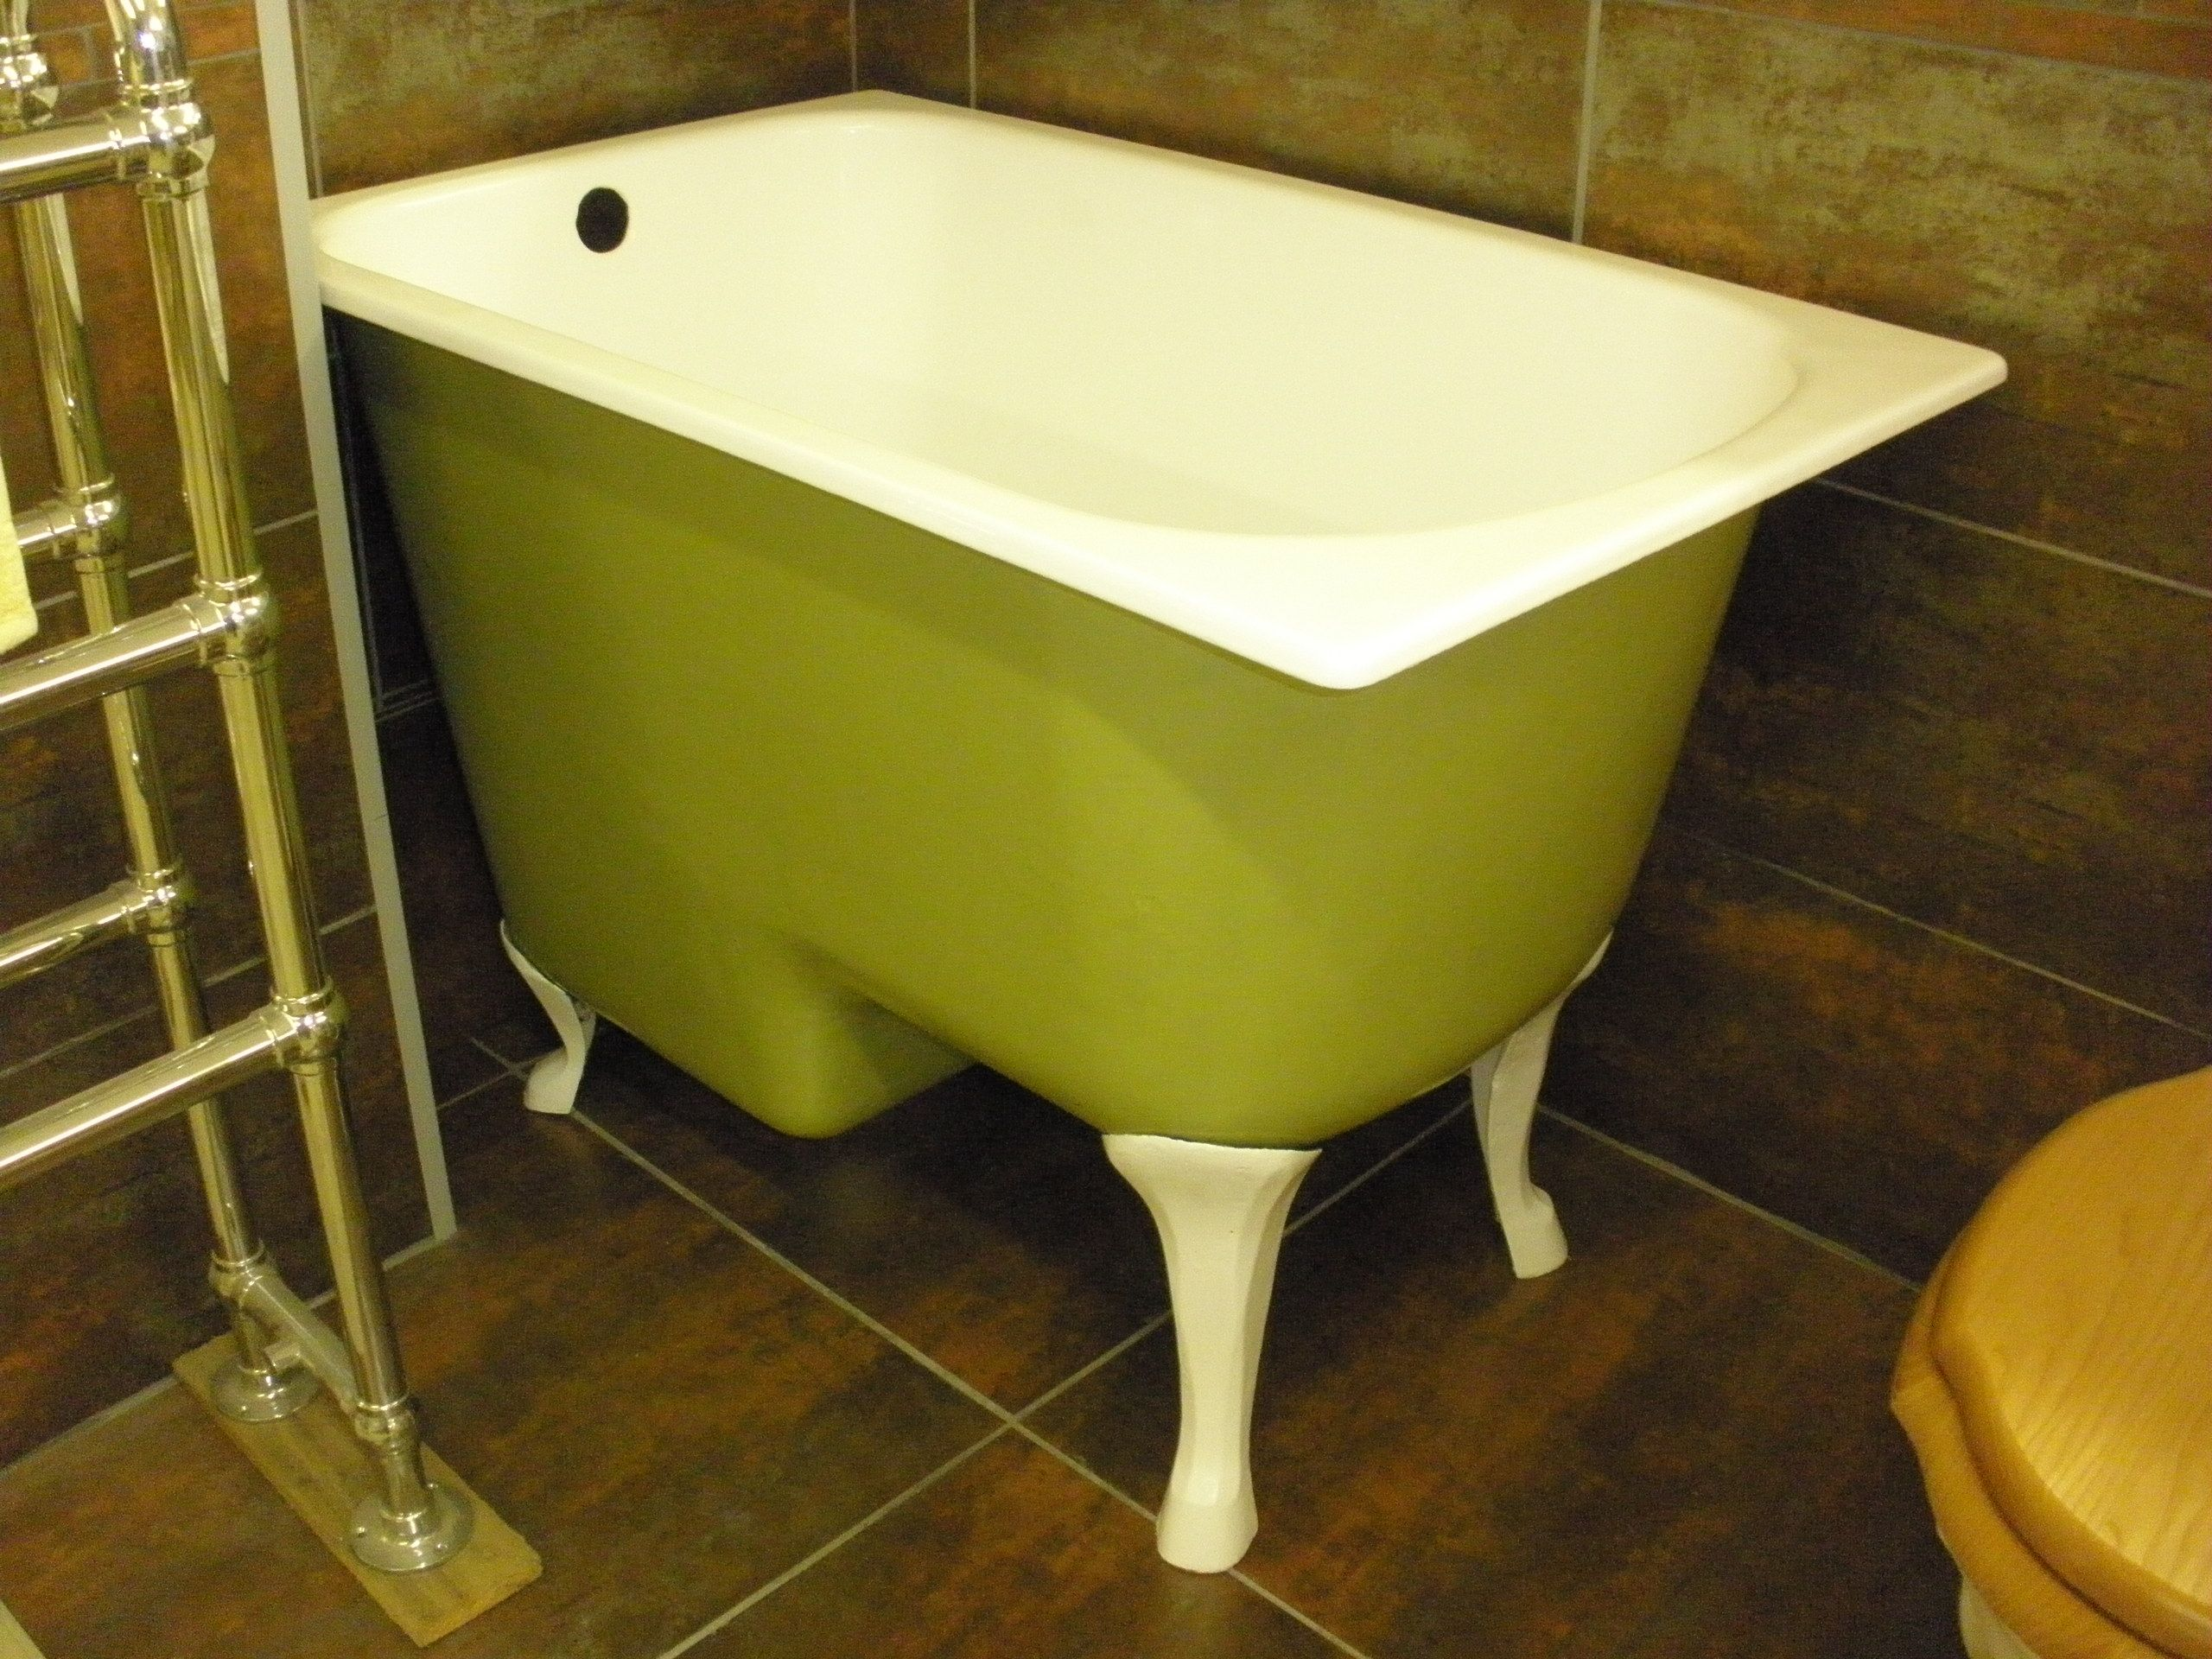 Sitz/Hip Bath - I love it will totally have one of these in our en ...